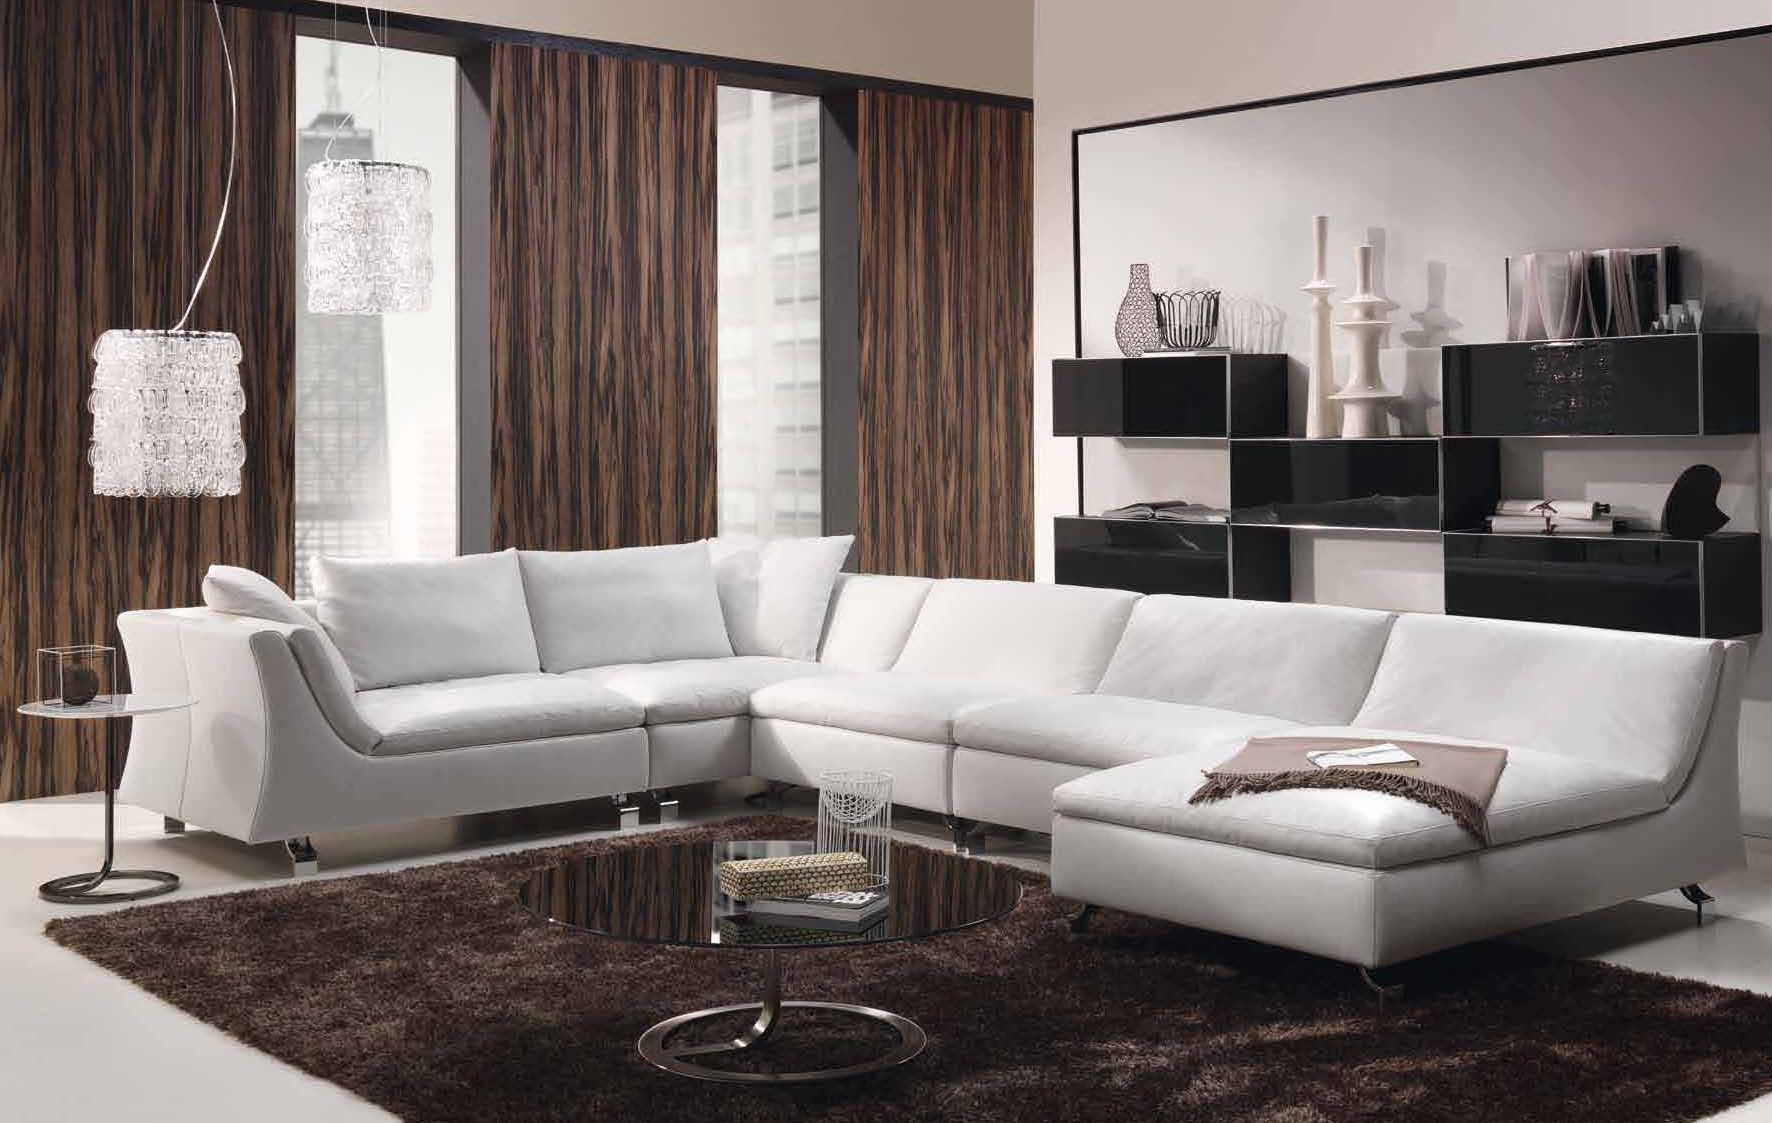 Wonderful Modern Living Living Room Sofas Uk As Living Room with 13 Awesome Tricks of How to Makeover Living Room Sets Uk